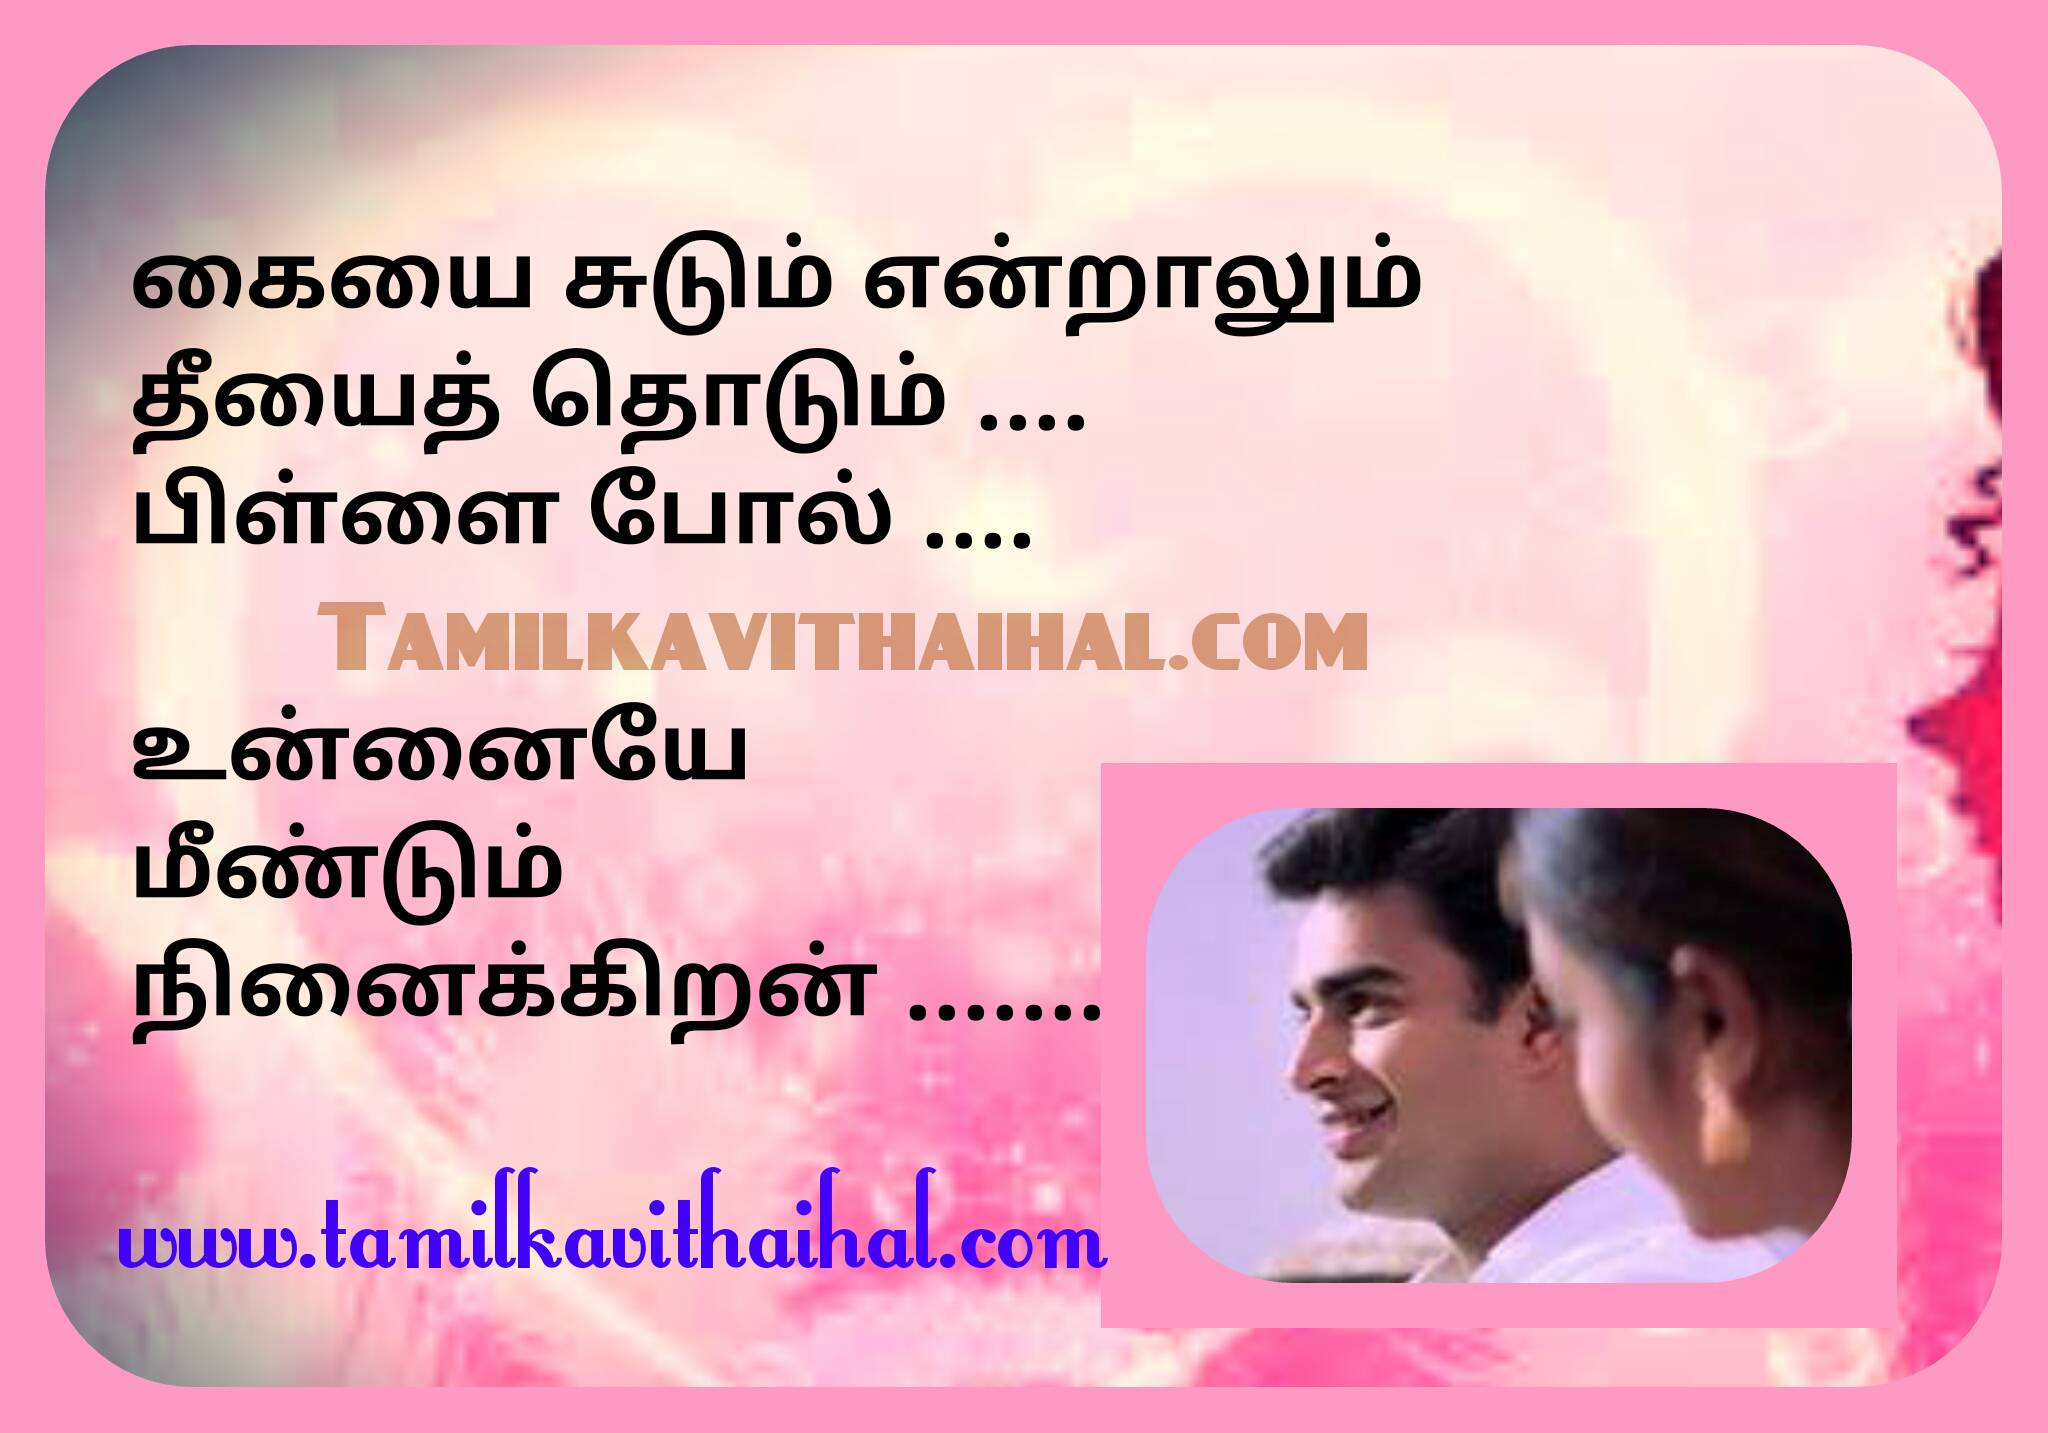 Un peyarai sonnalae madhavan jyothika songs download mp3 images quotes awesome lines poems